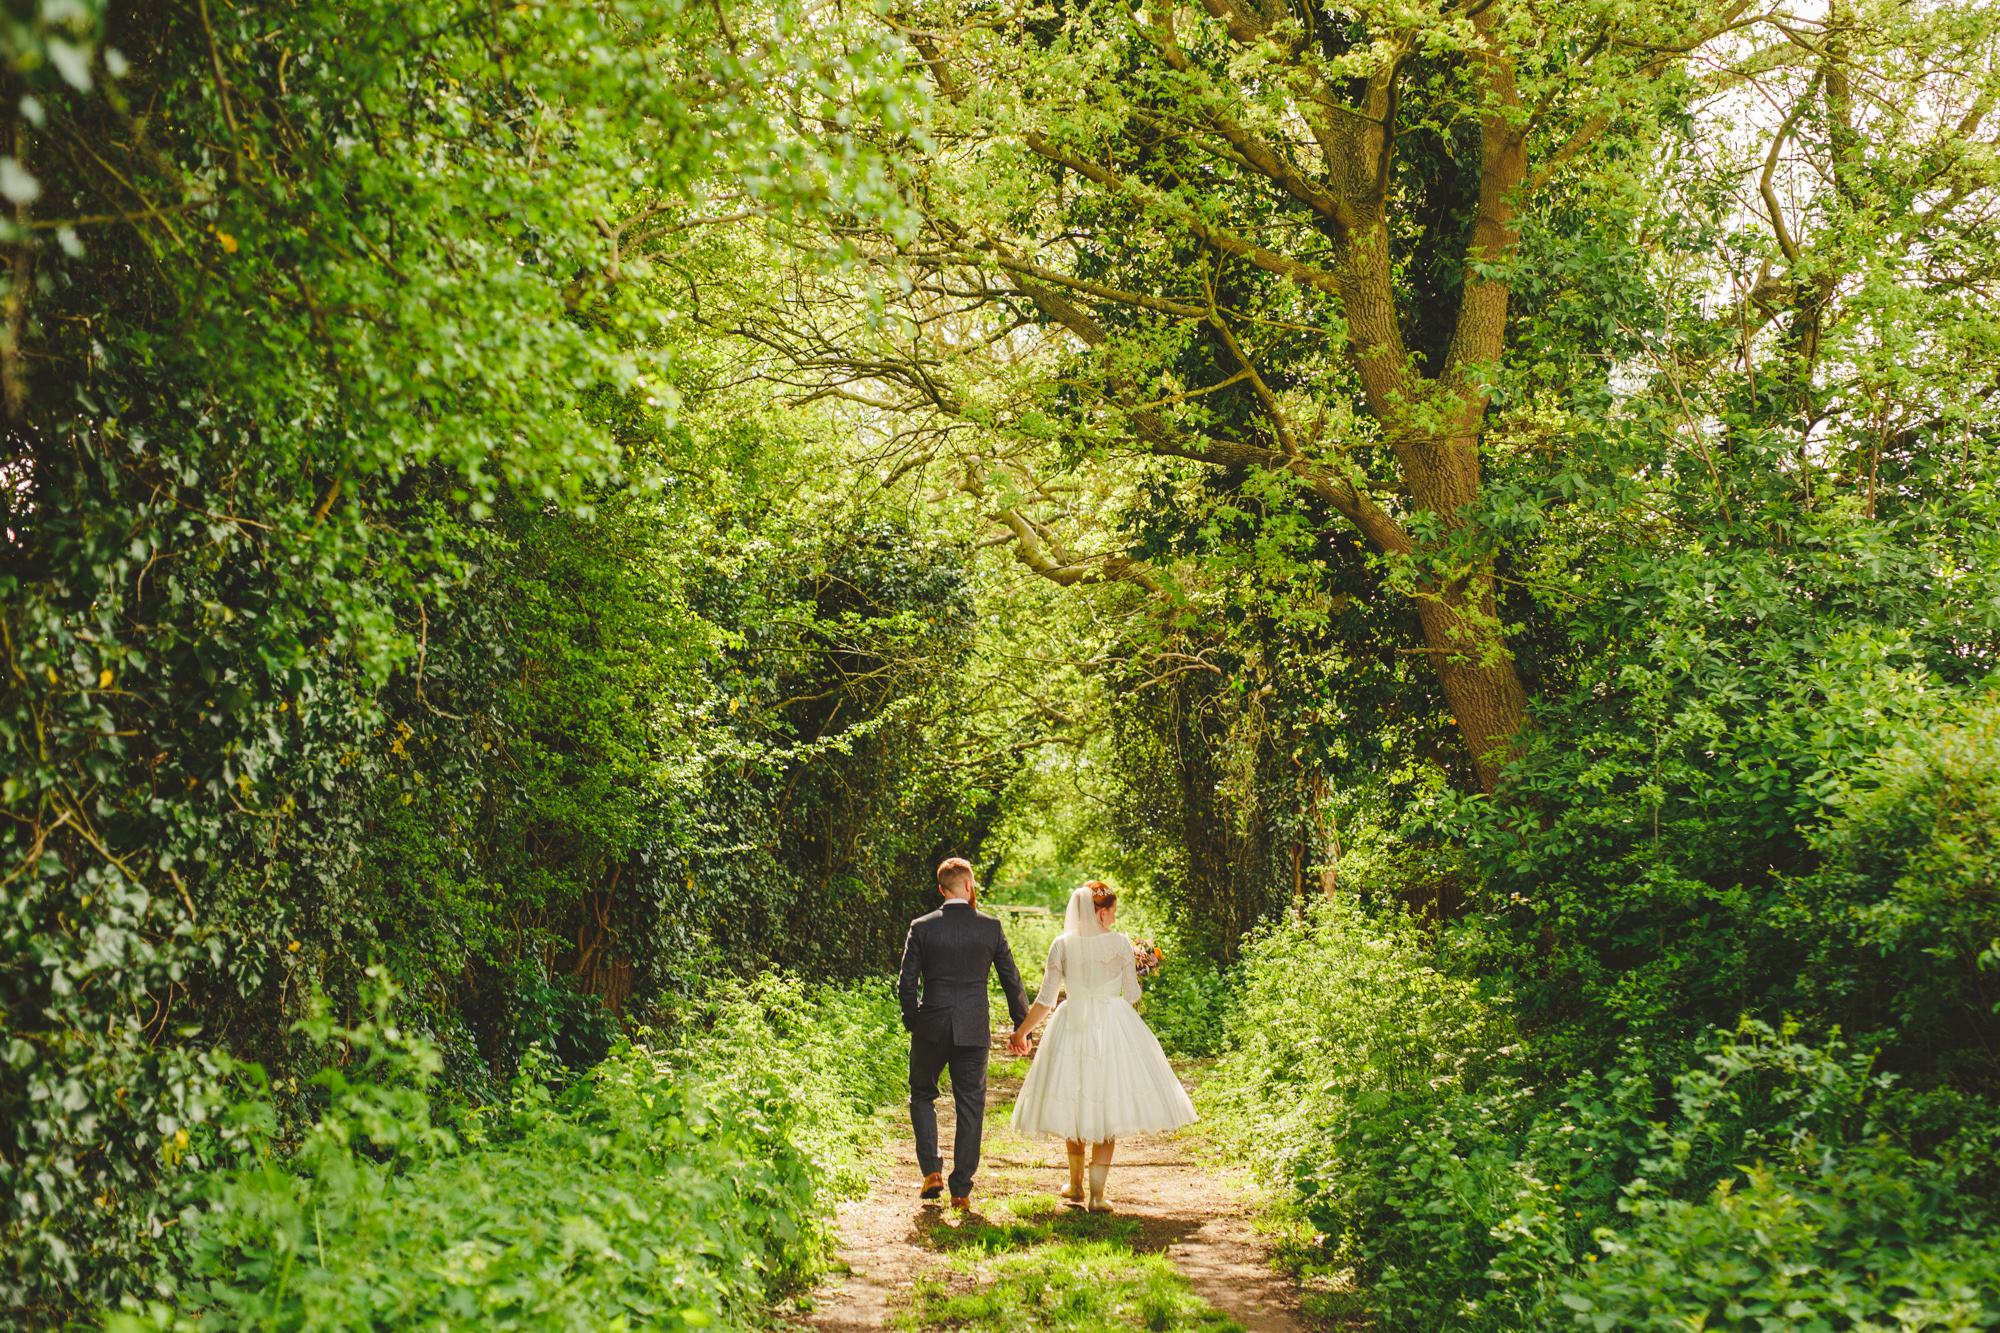 creative-informal-wedding-photographer-uk-camera-hannah-14.jpg